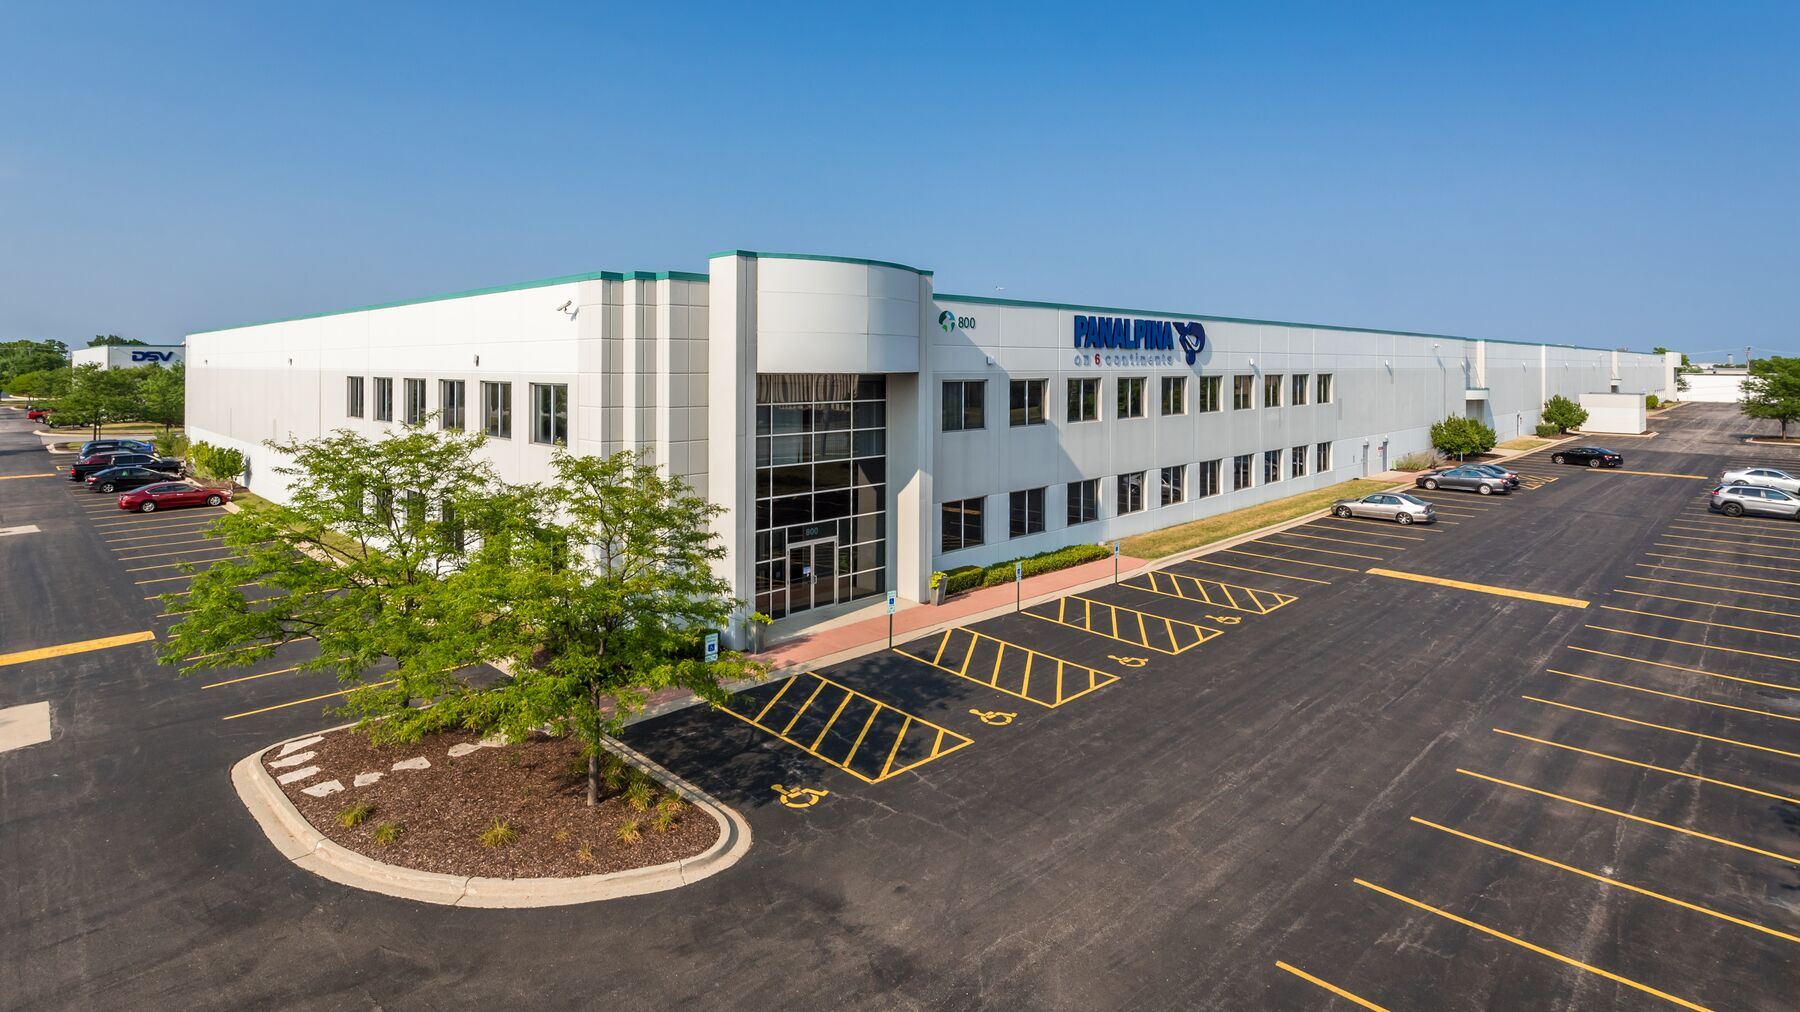 DPM-Prologis-Elk-Grove-Village-800-890-Devon-Unit-870_Bldg-Image.jpg